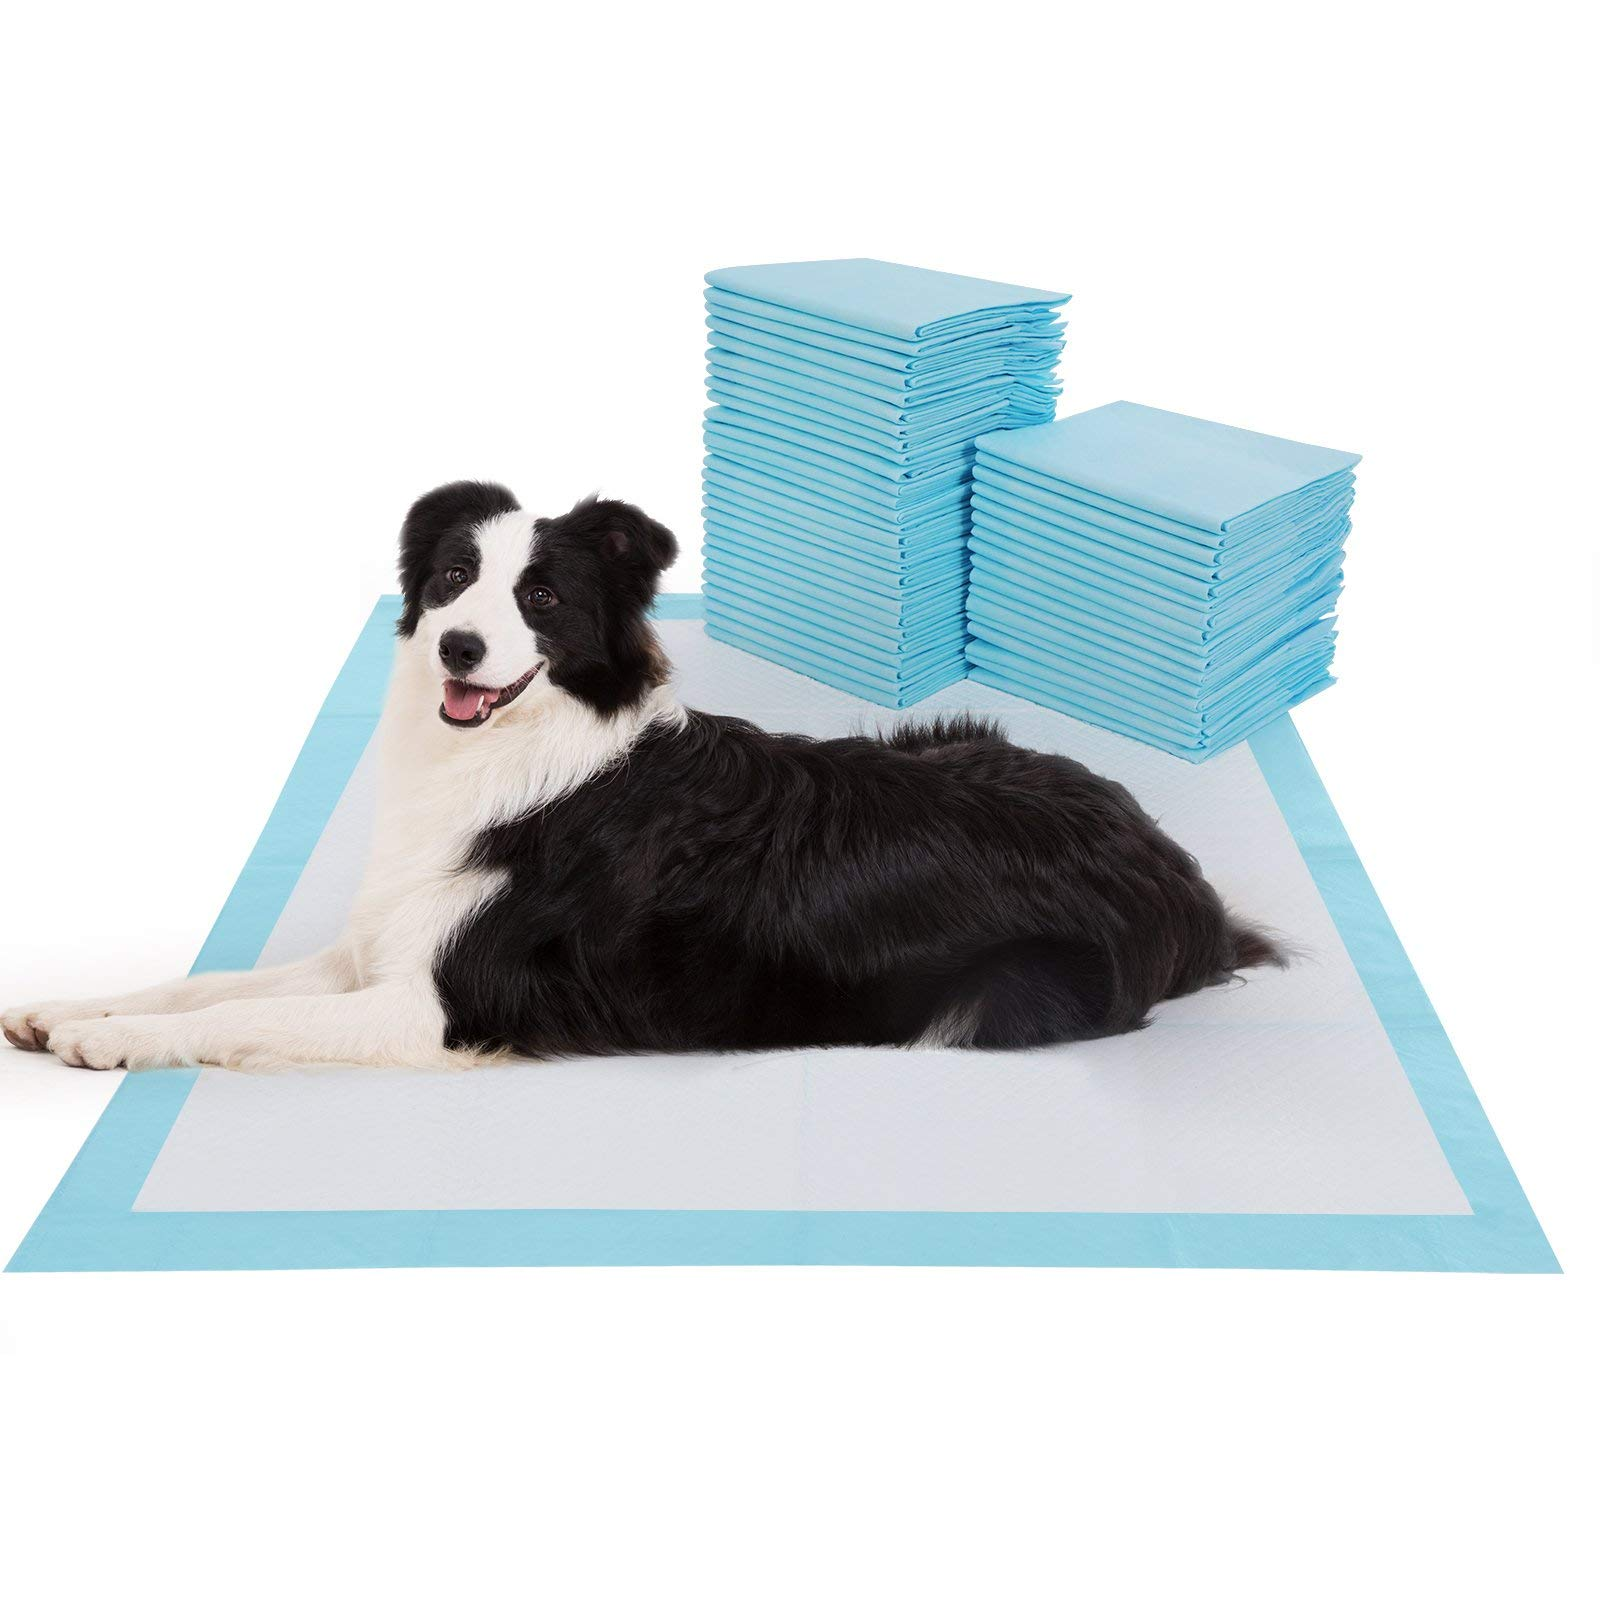 BESTLE Extra Large Pet Training and Puppy Pads Pee Pads for Dogs 28''x34'' -40 Count Super Absorbent & Leak-Free